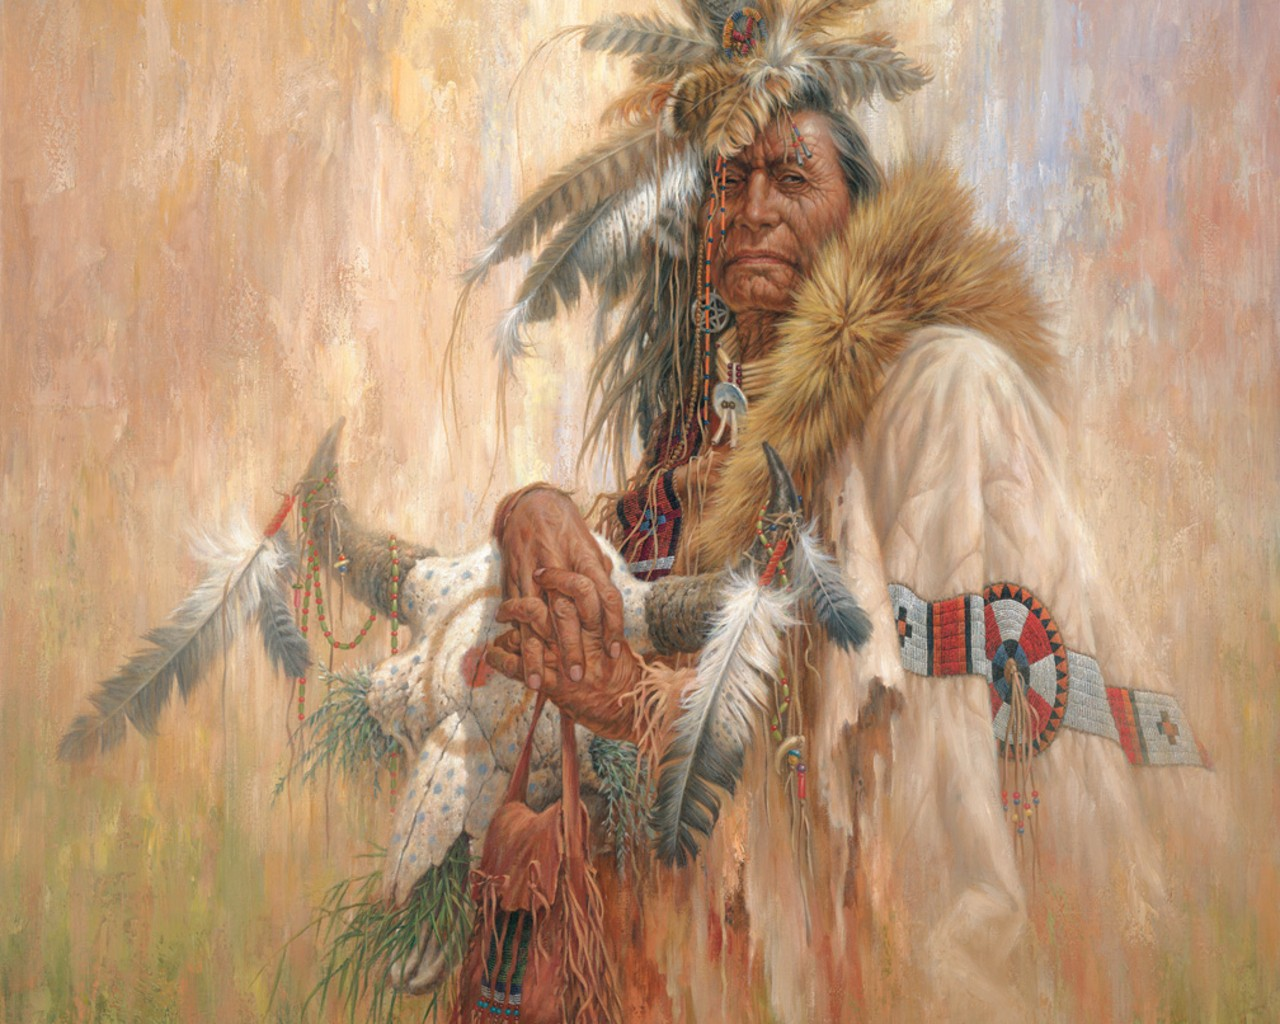 native american transition to freedom From strengthening cybersecurity, to promoting the free flow of information worldwide, to expanding broadband access, the obama administration has consistently championed policies to ensure the internet remains the greatest platform for free expression, innovation, and economic opportunity ever known.